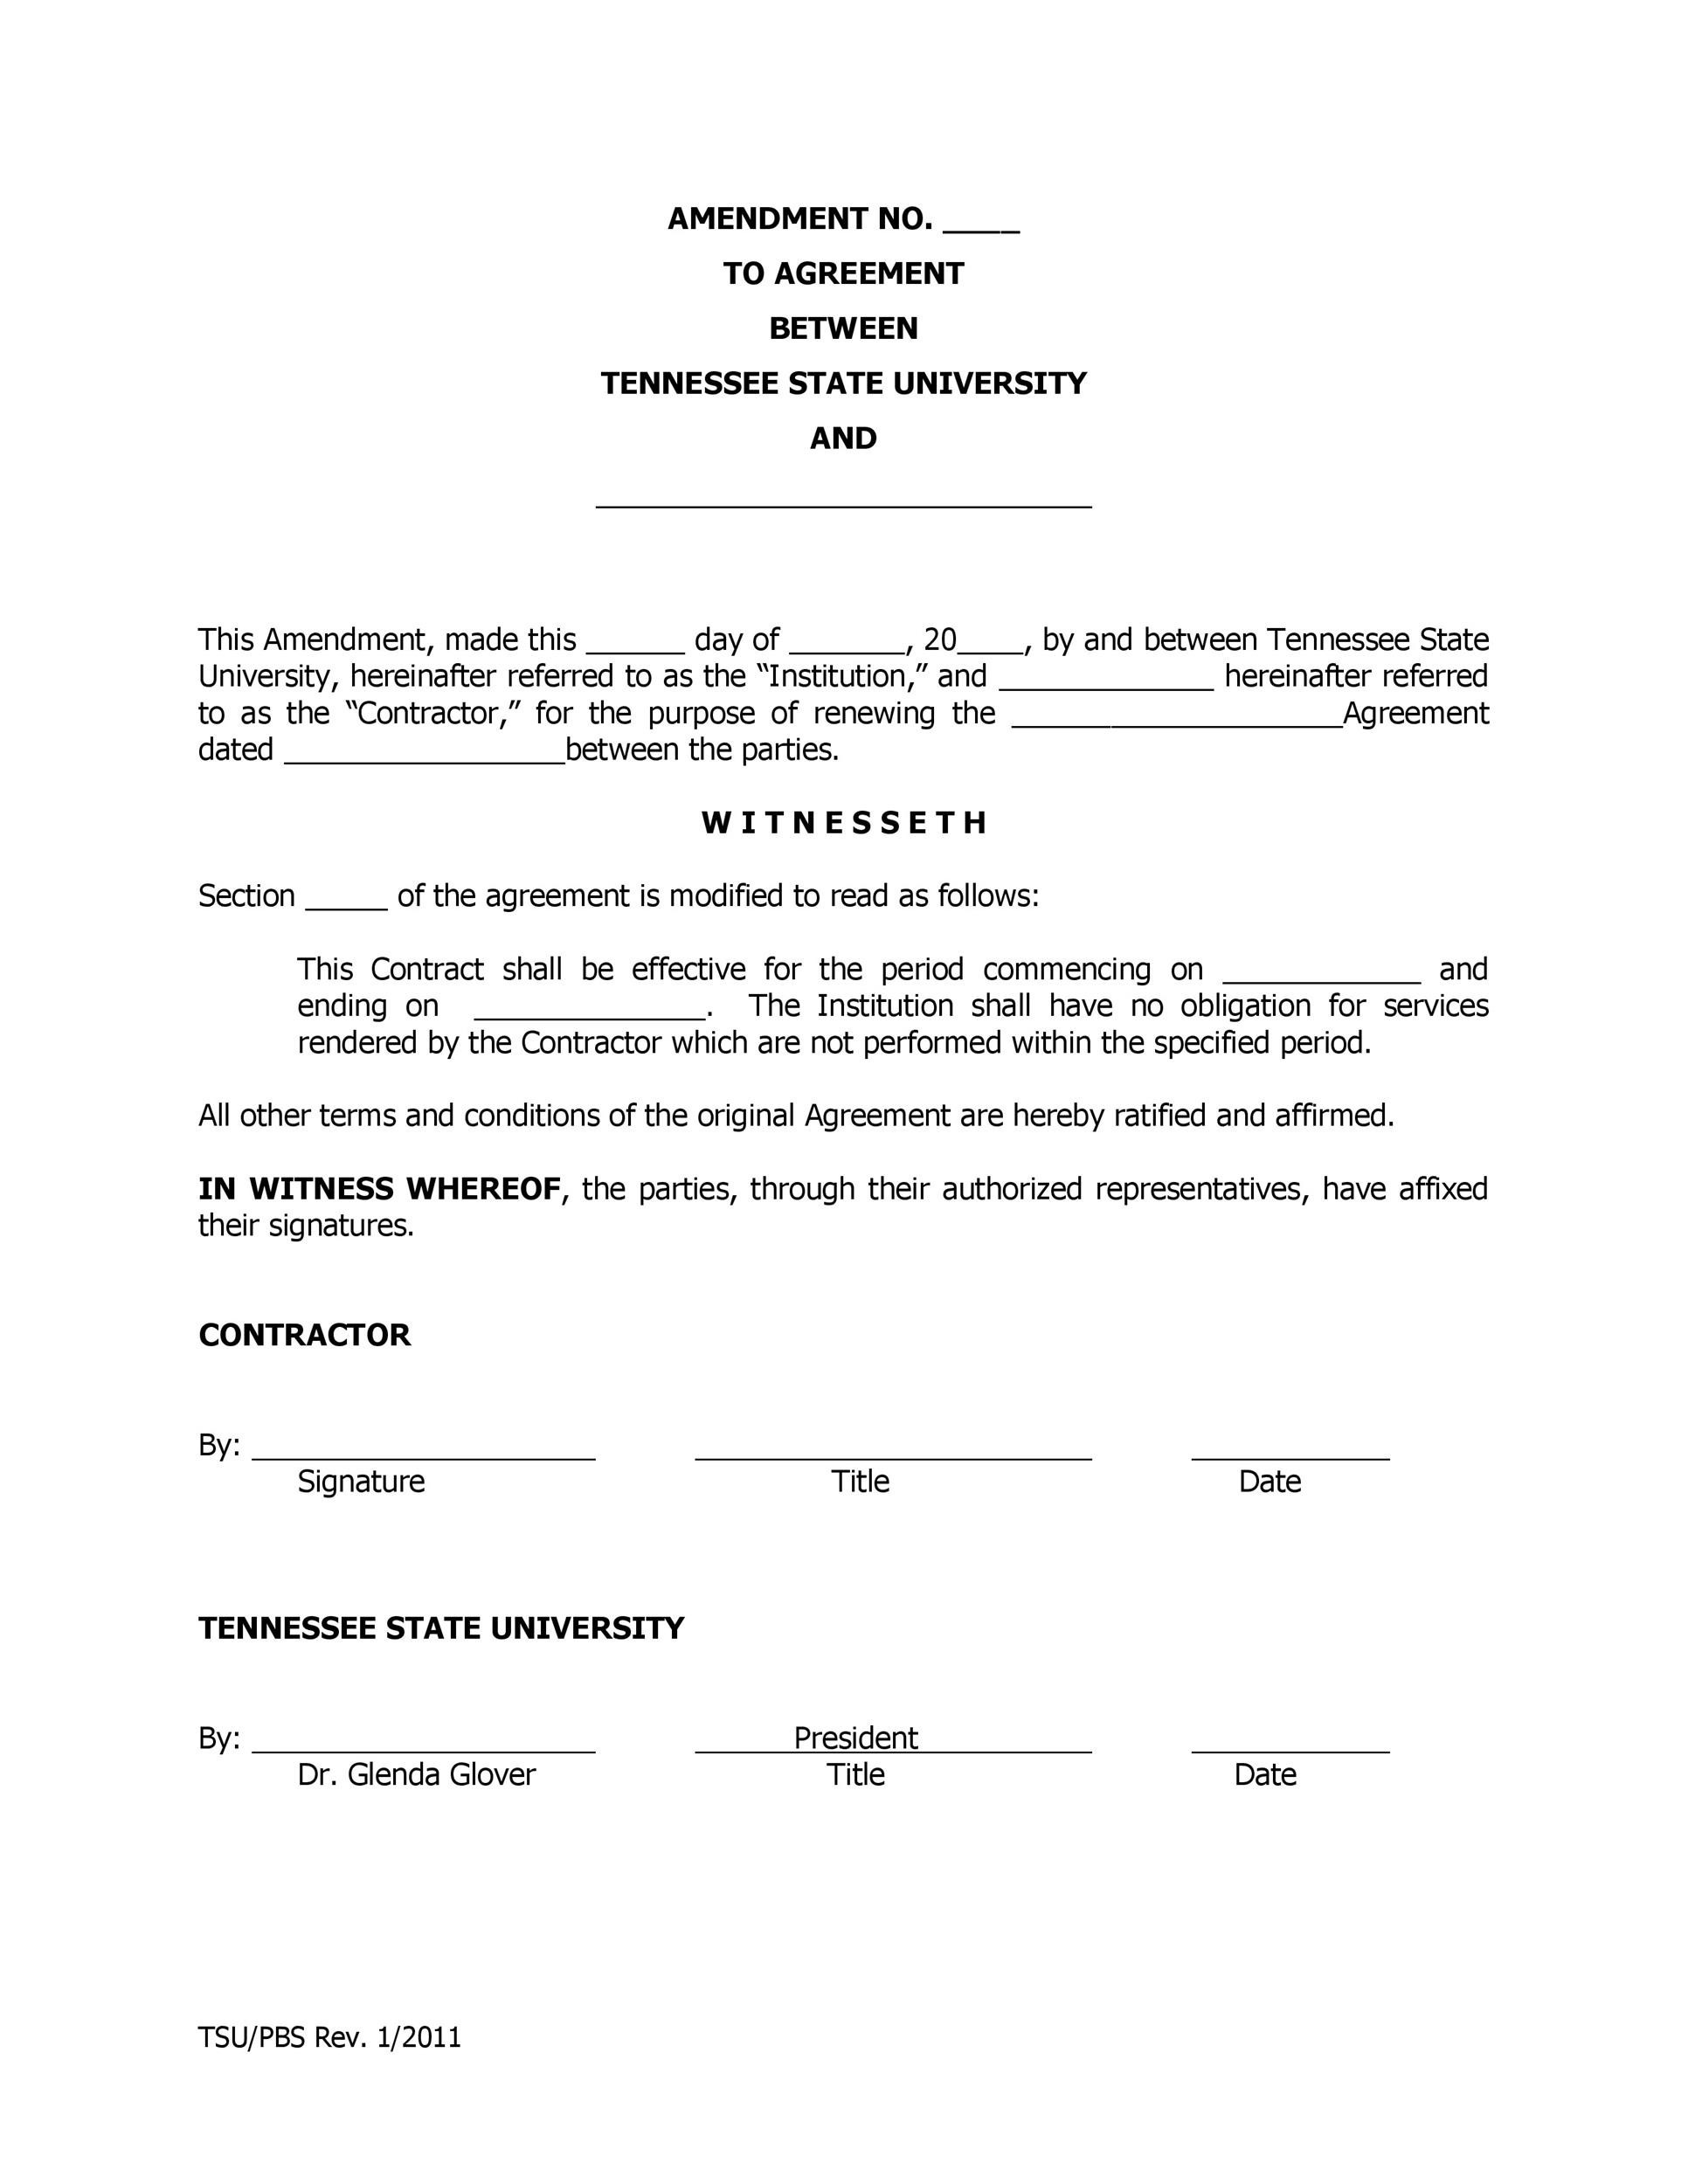 Free contract amendment 04